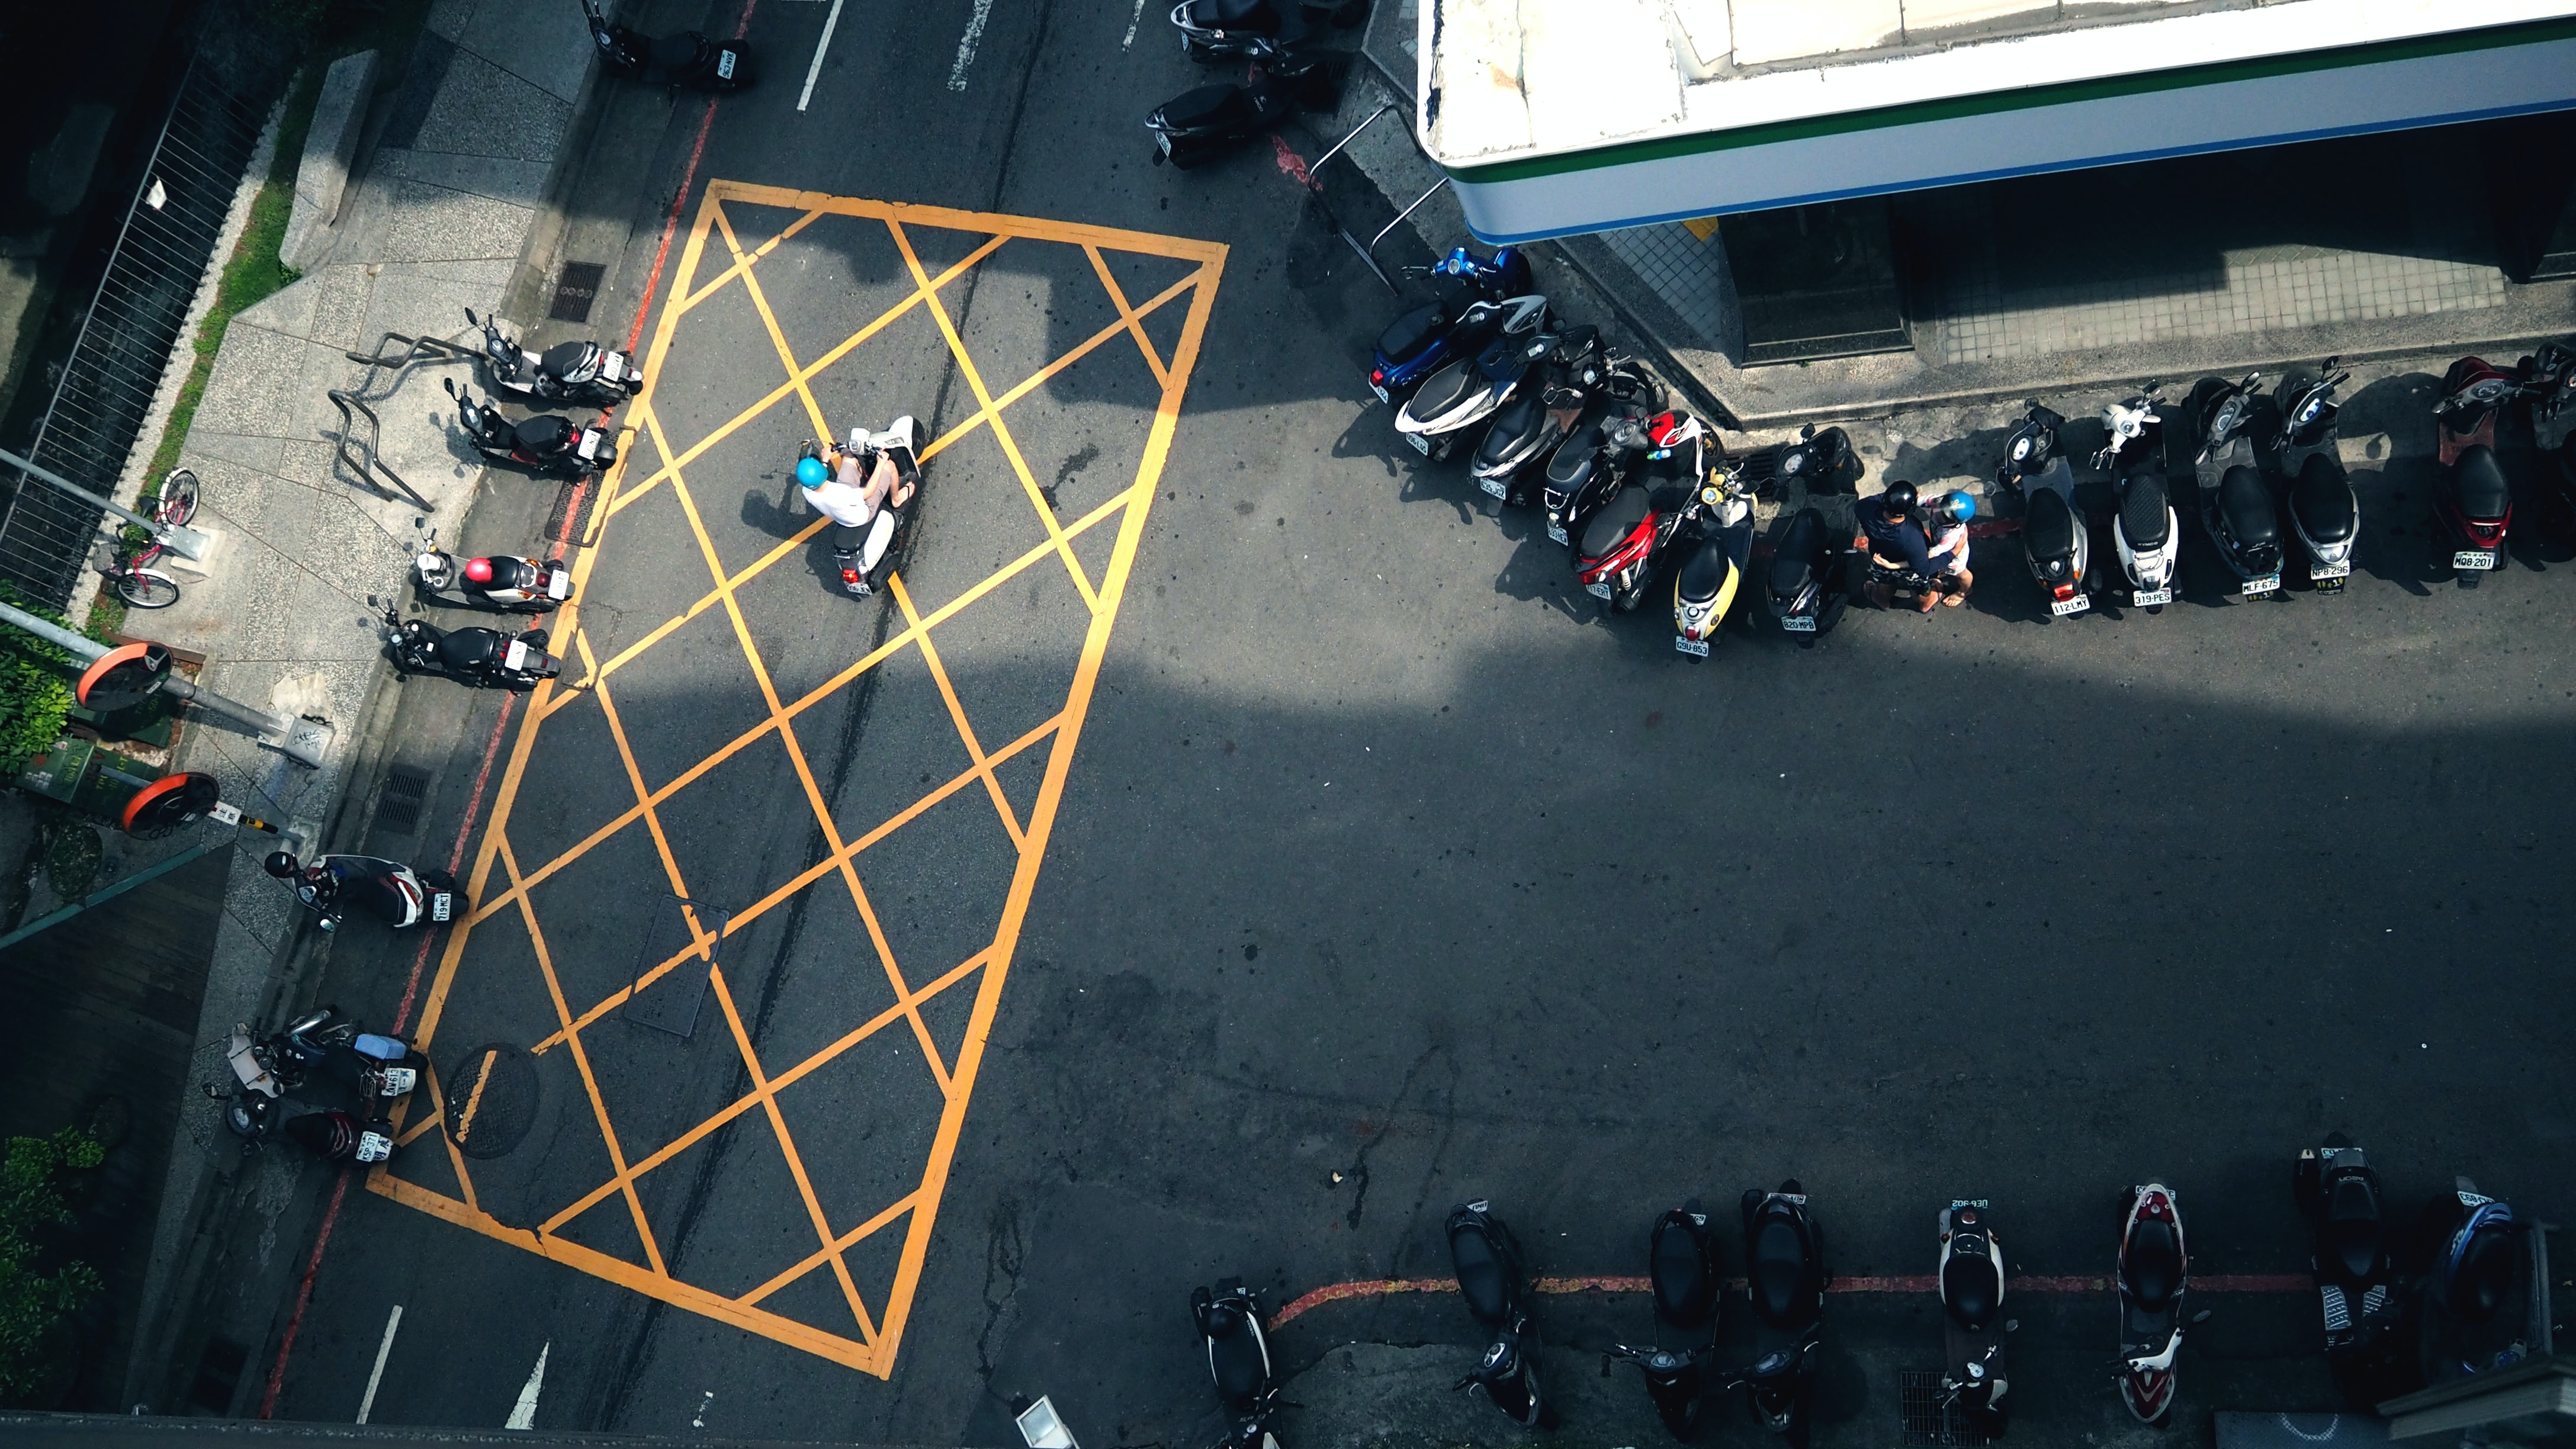 assorted motorcycles parked between road section